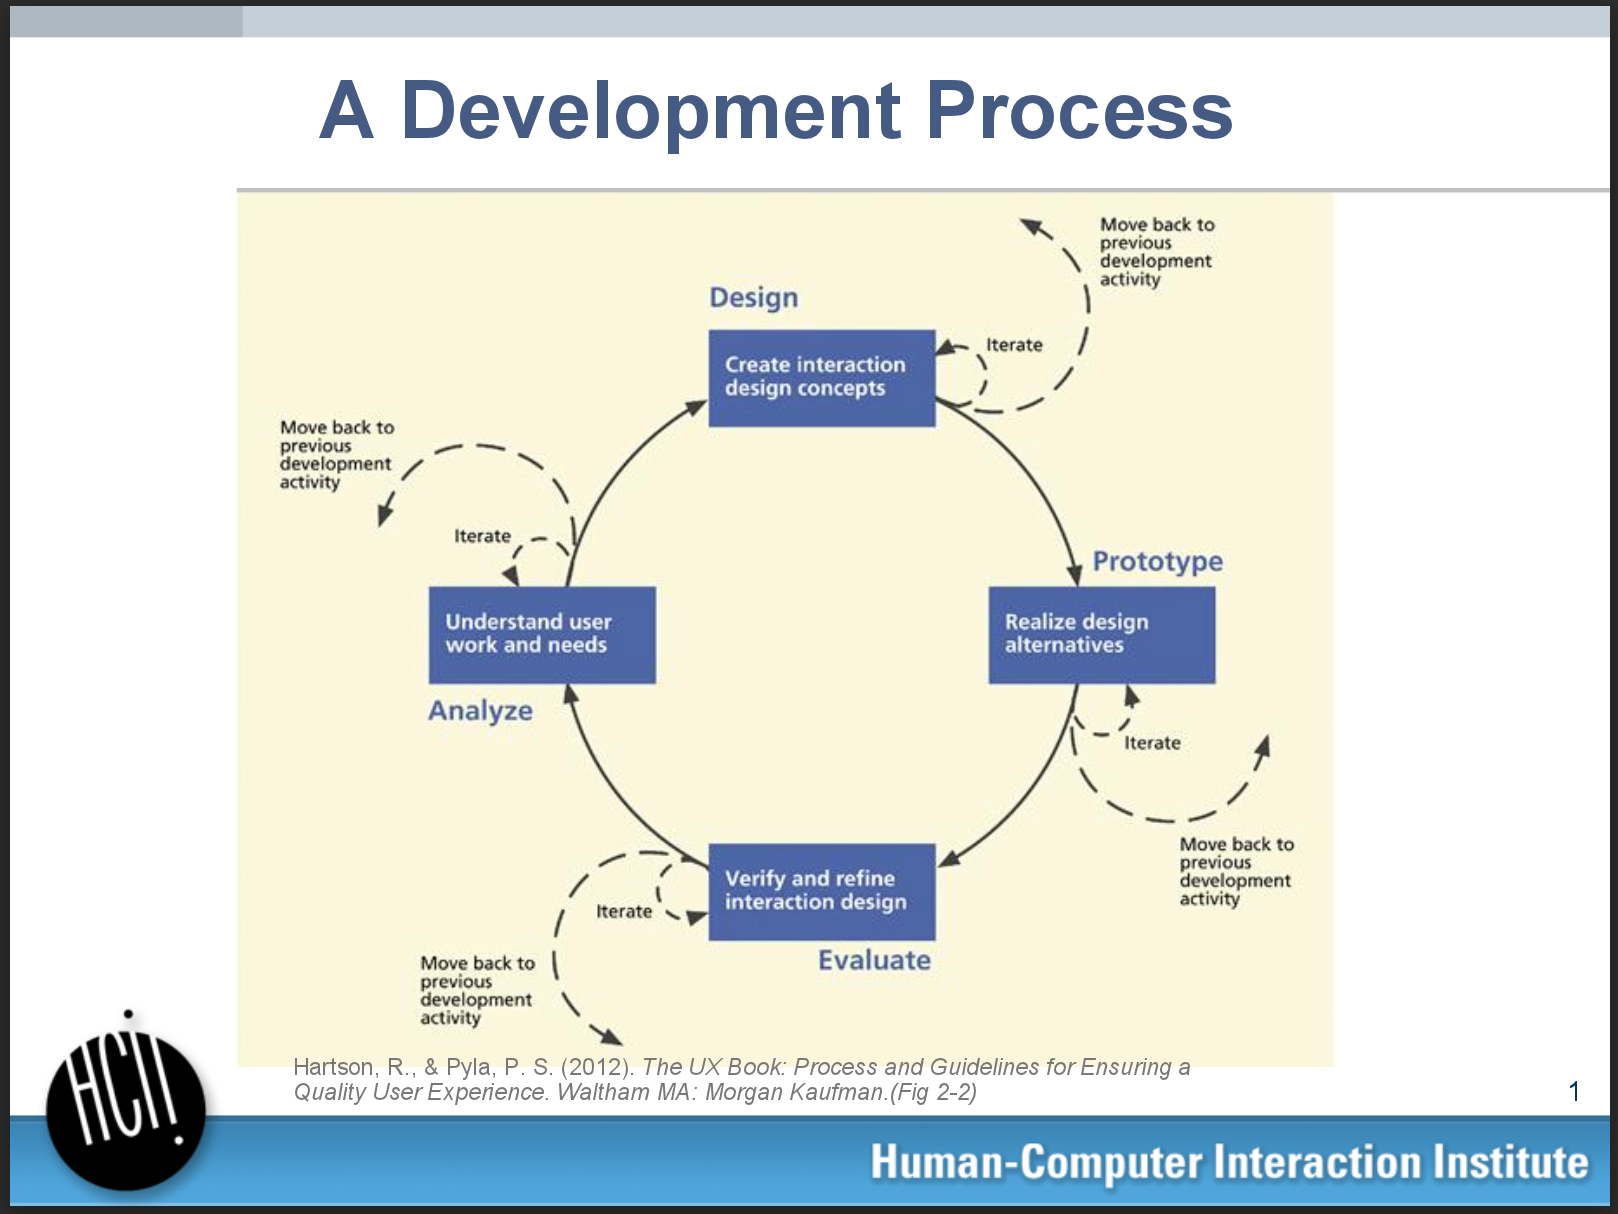 User-centered research and evaluation takes place pre-design to inform it and post-design to evaluate it. These are theAnalyze and Evaluate portions of the diagram. This information was taught in UCRE, a core class for the Master's in HCI program.